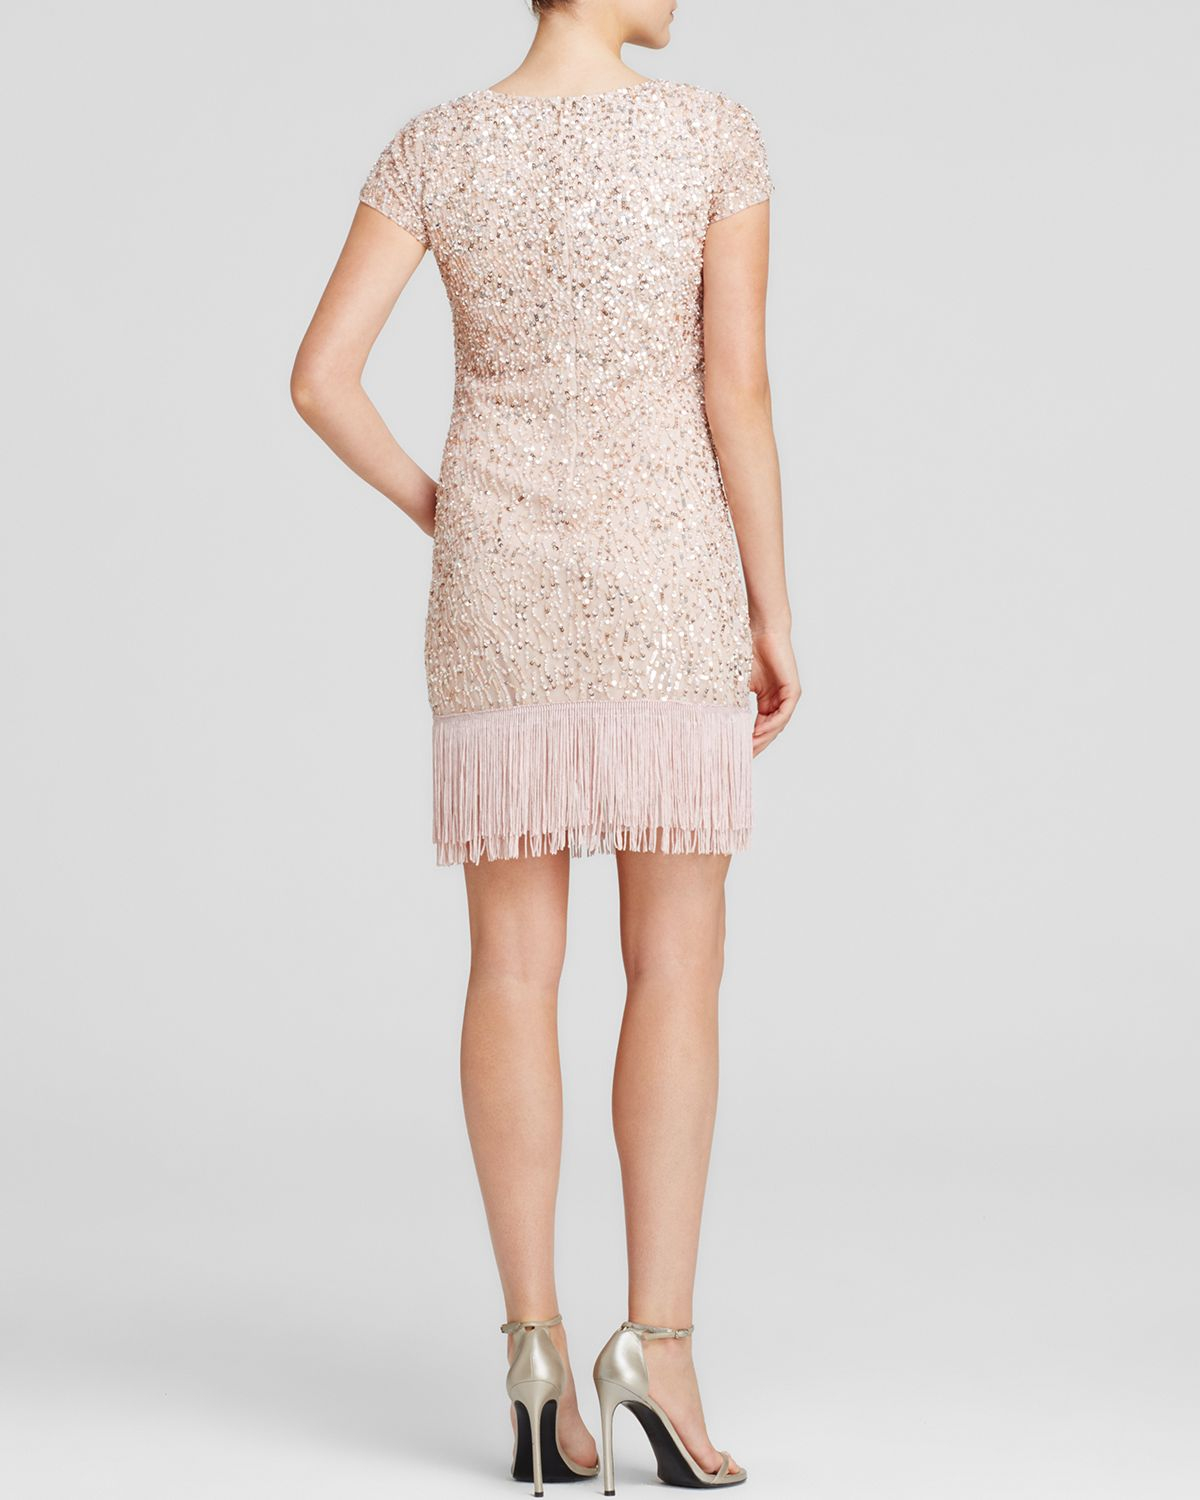 Lyst - Aidan Mattox Dress - Cap Sleeve Embellished Fringe ...